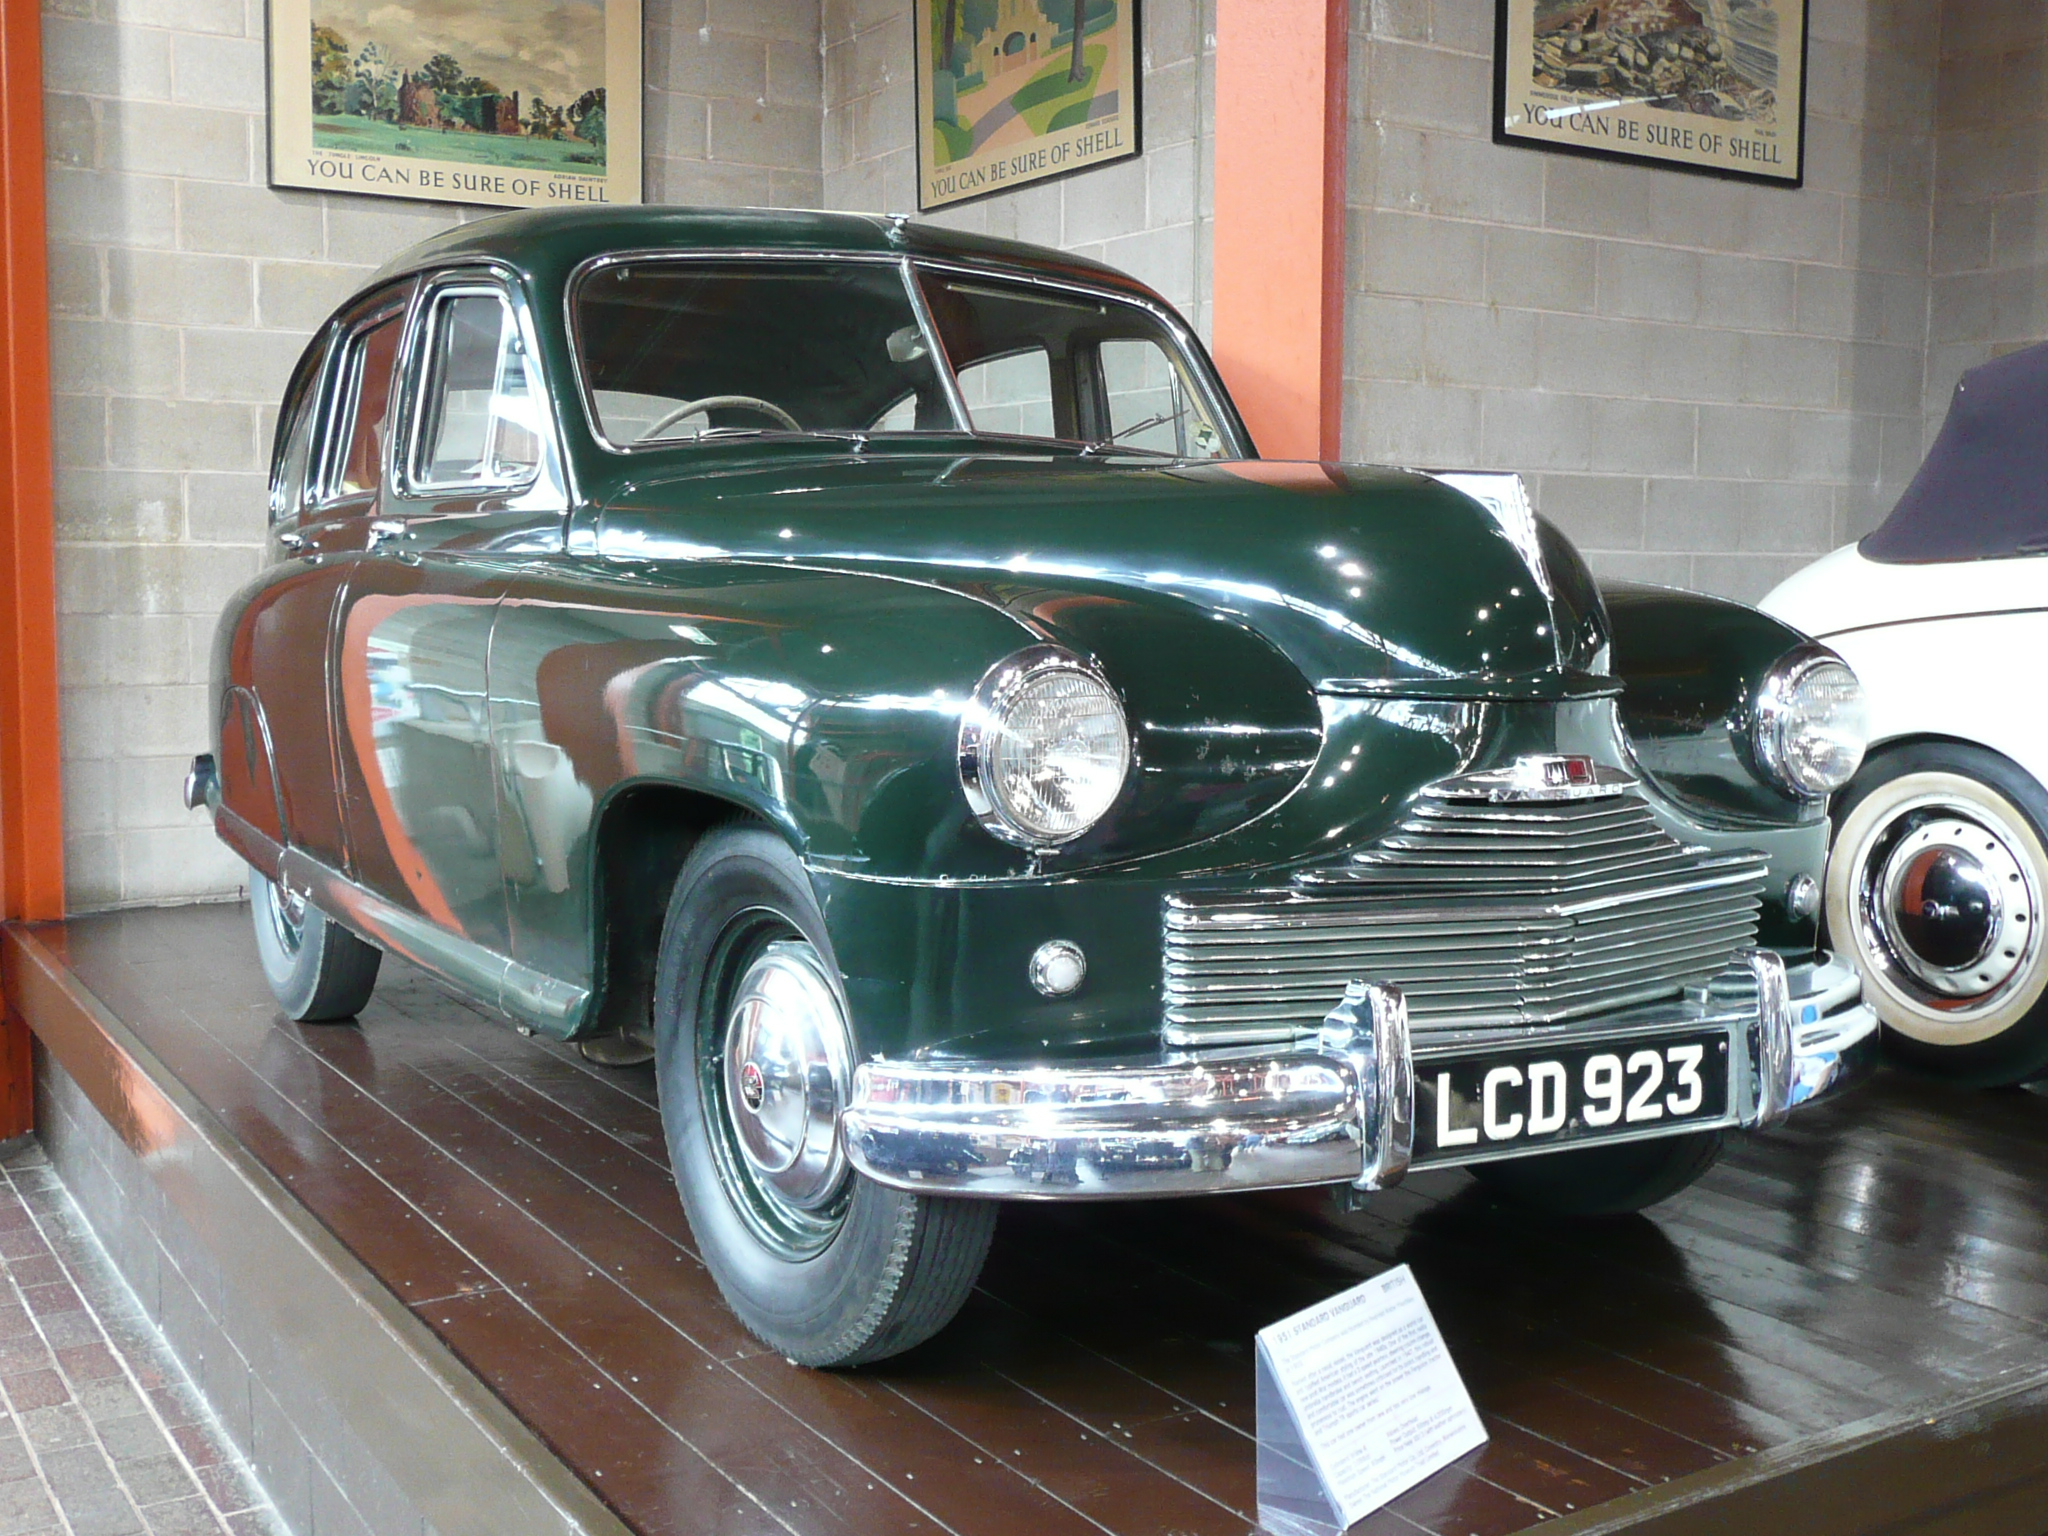 File:1951 Standard Vanguard.JPG - Wikimedia Commons